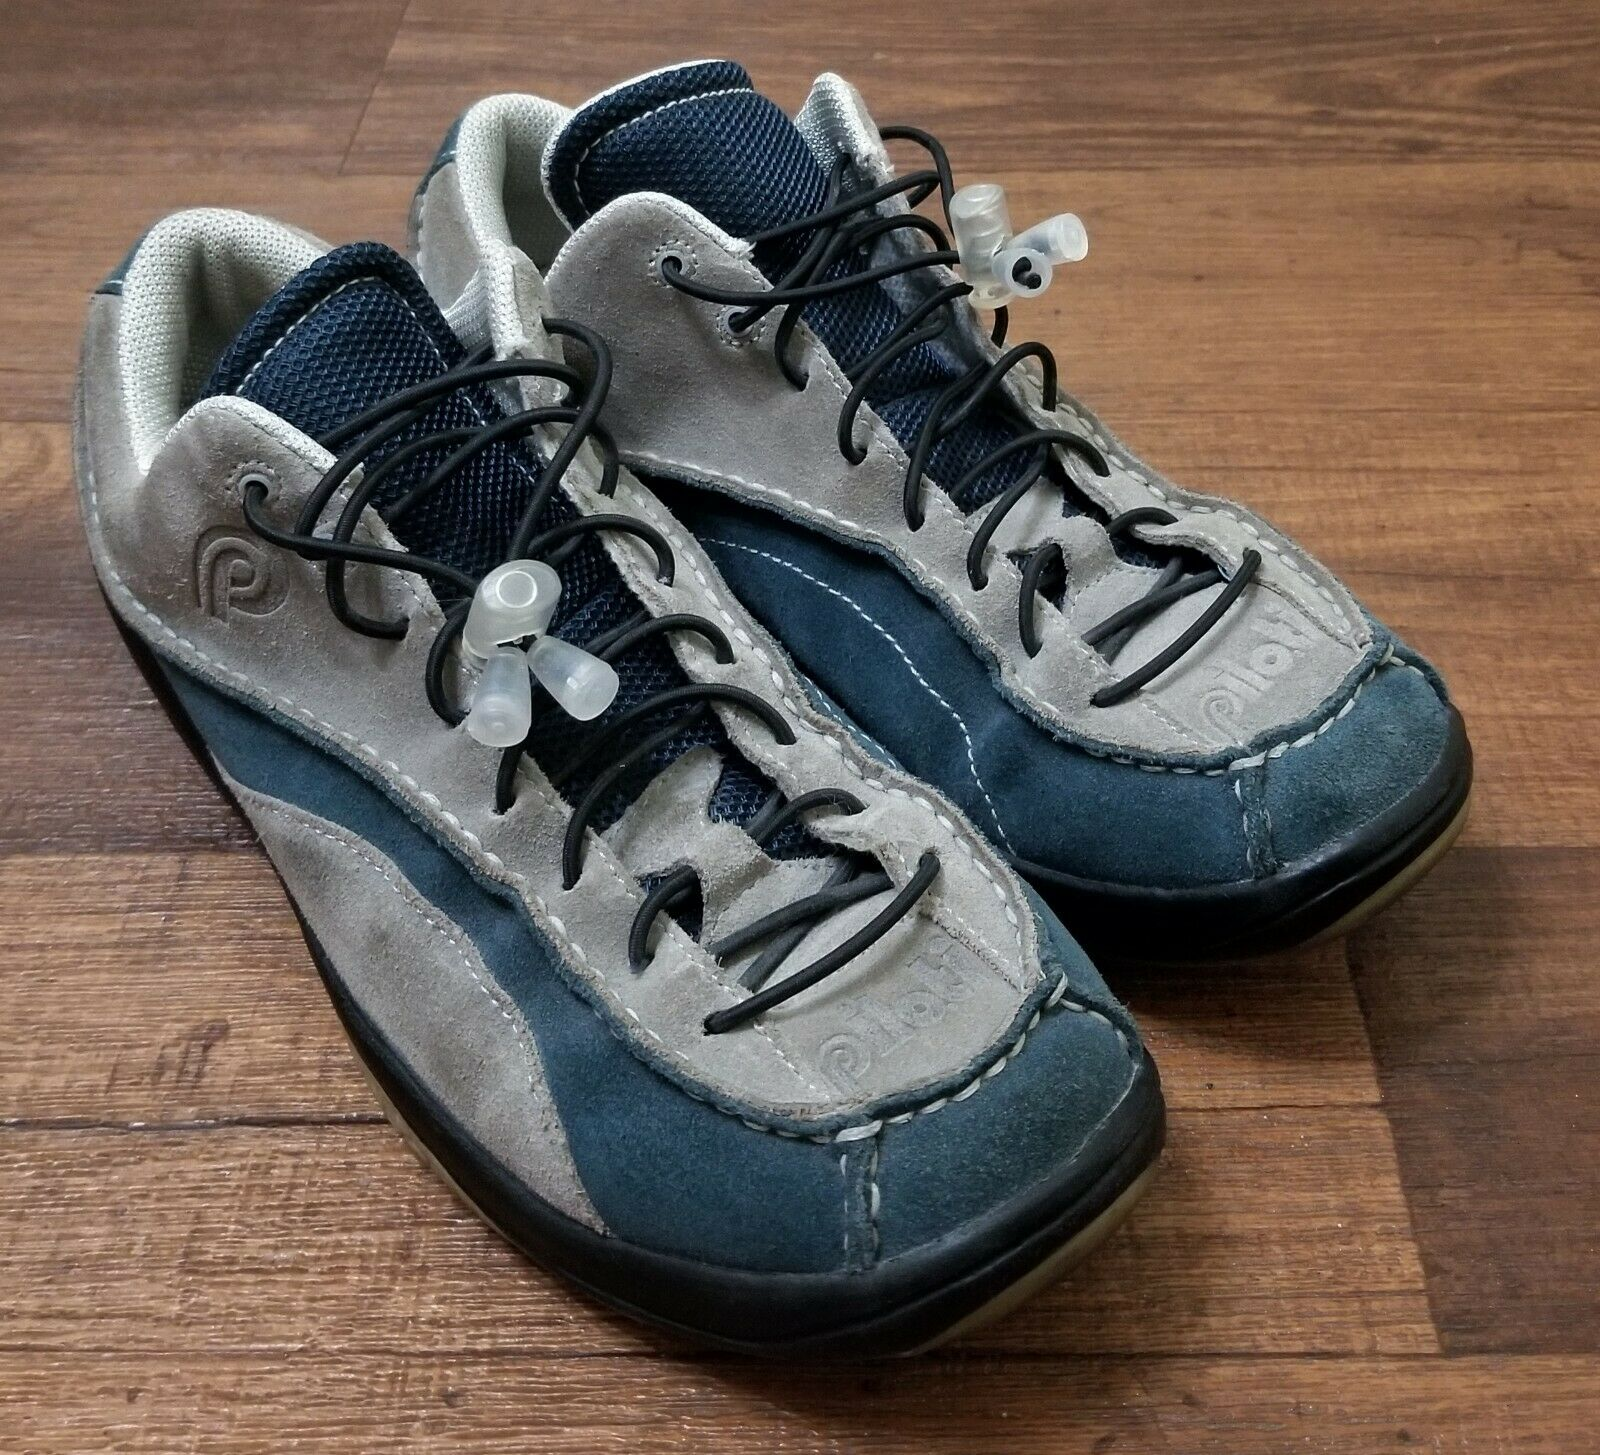 PILOTI 2 Tone blueE Grey SUEDE Stradale CL Racing DRIVING SHOES Size 9 US EUC